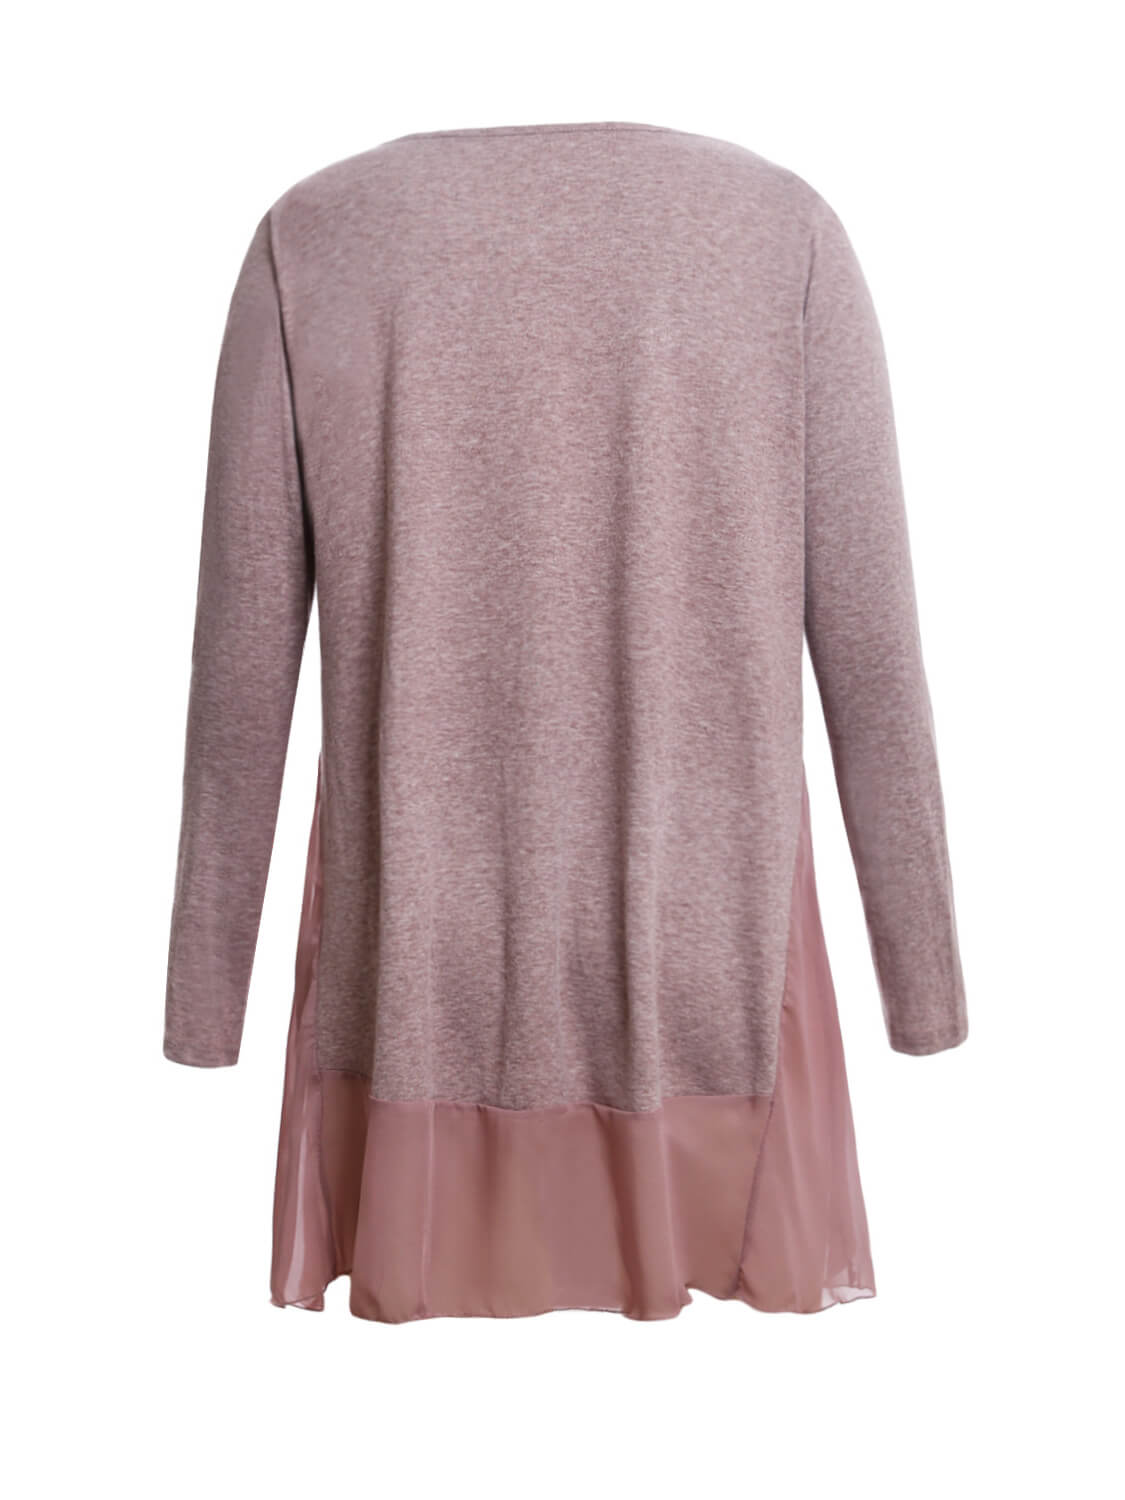 Chiffon Hemline Splice Coffee Long Sleeve Top